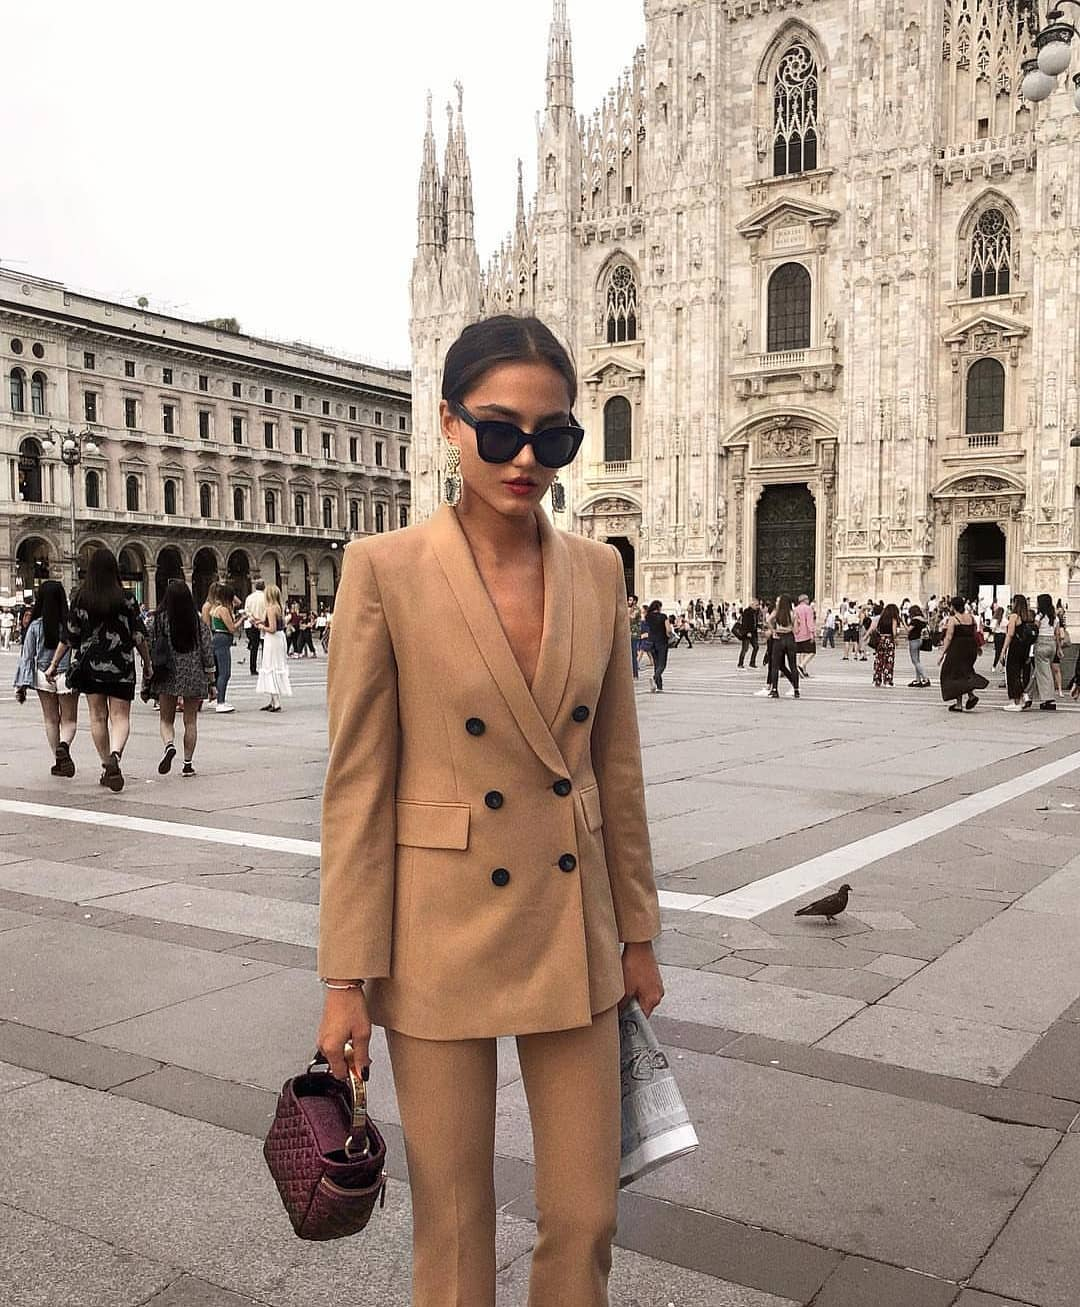 Double Breasted Camel Pantsuit For Fall In Milan 2019